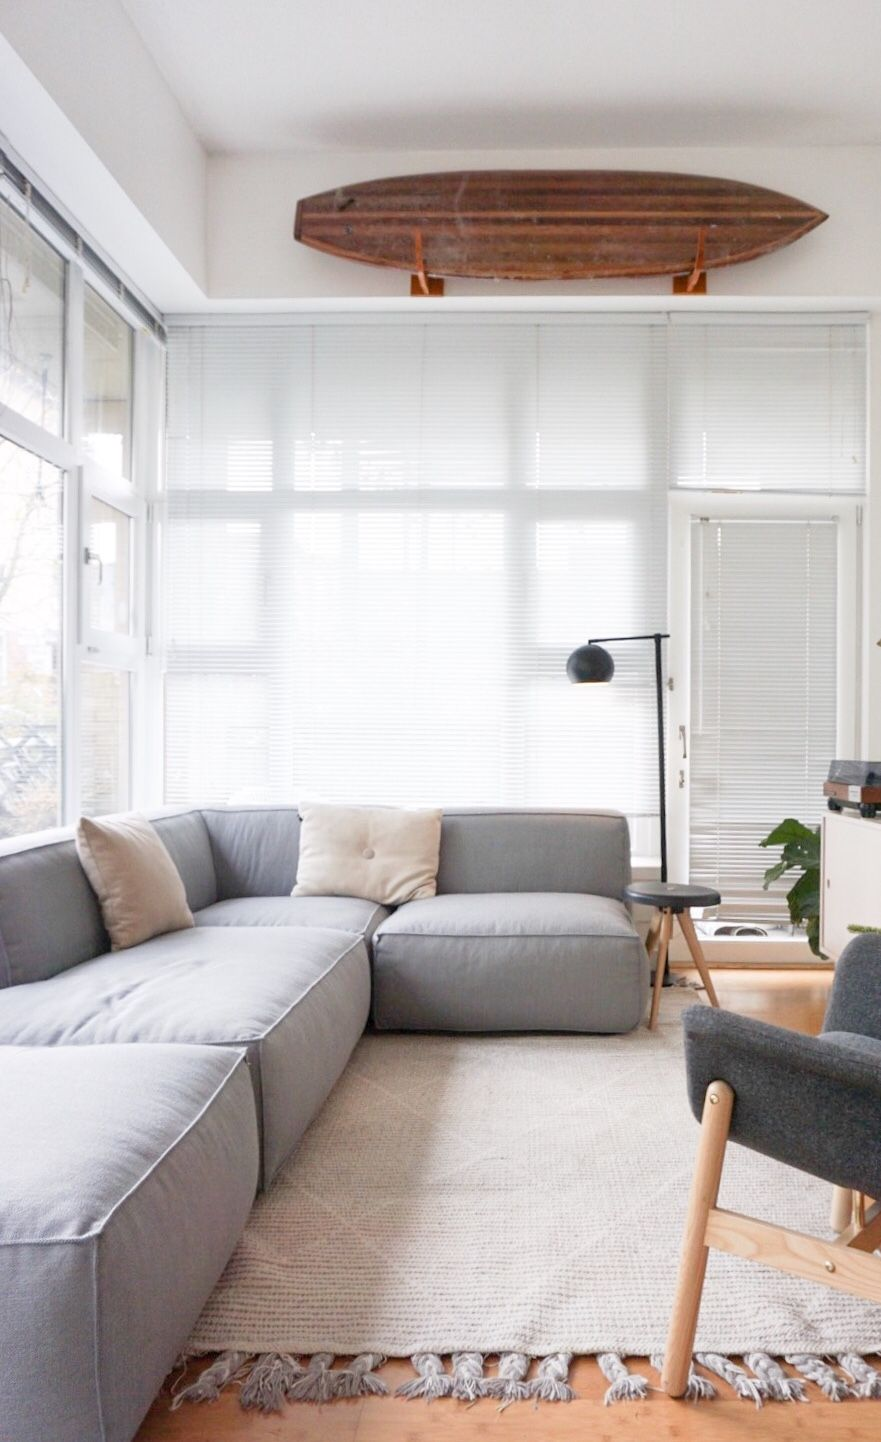 A Modular Sofa For Our Small Space Sofas For Small Spaces Small Apartment Bedrooms Couches For Small Spaces